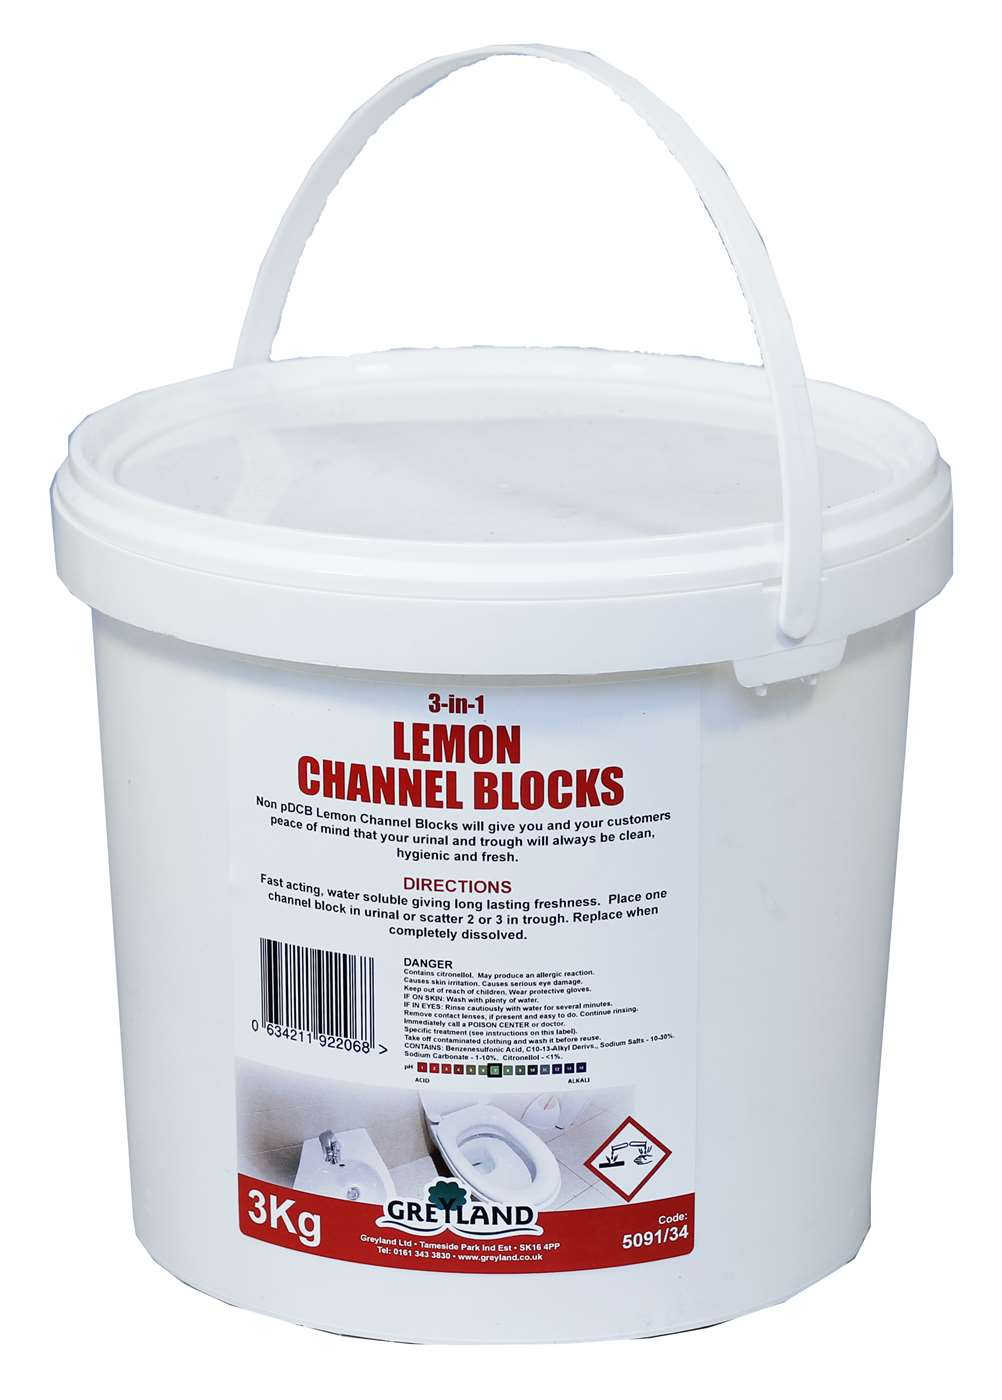 PRO Lemon Channel Blocks